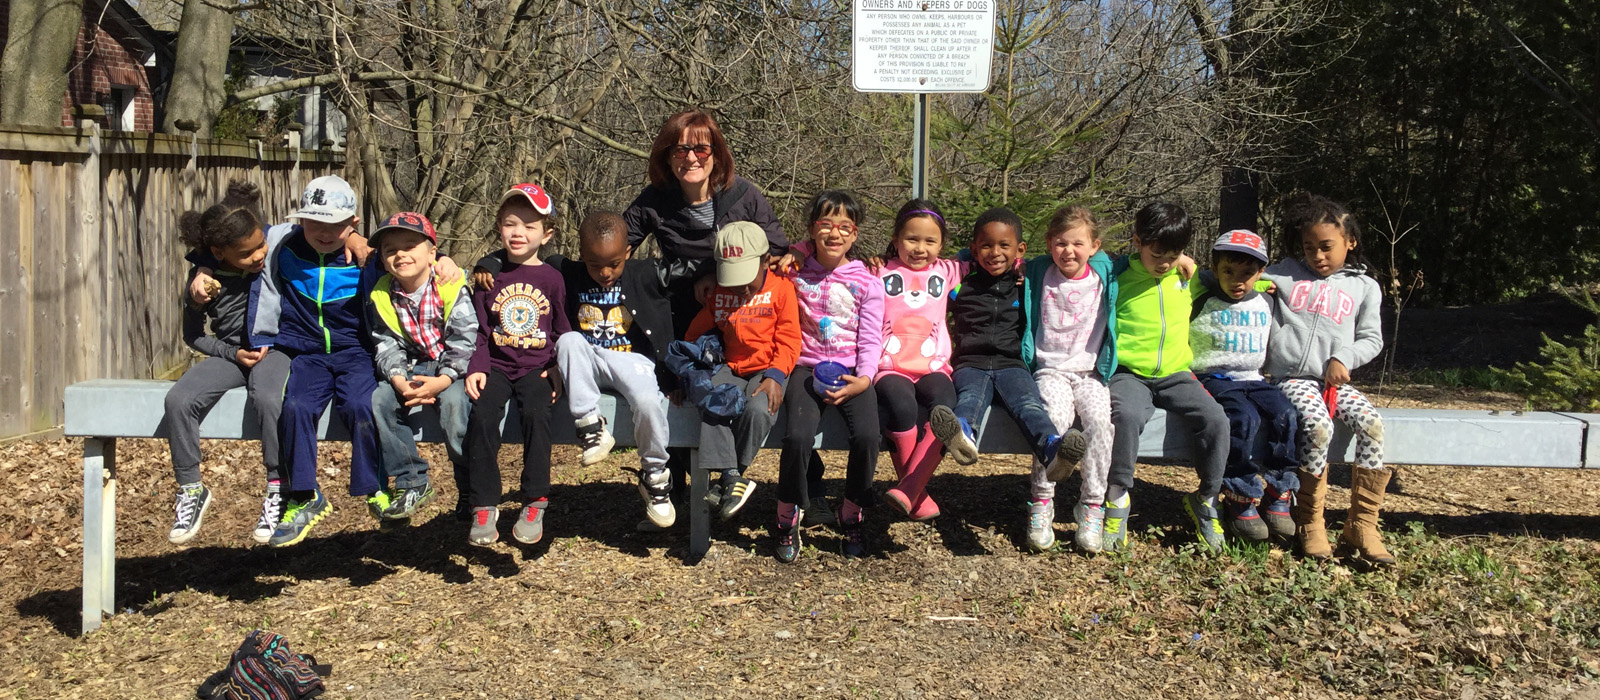 Kindergarten students outside